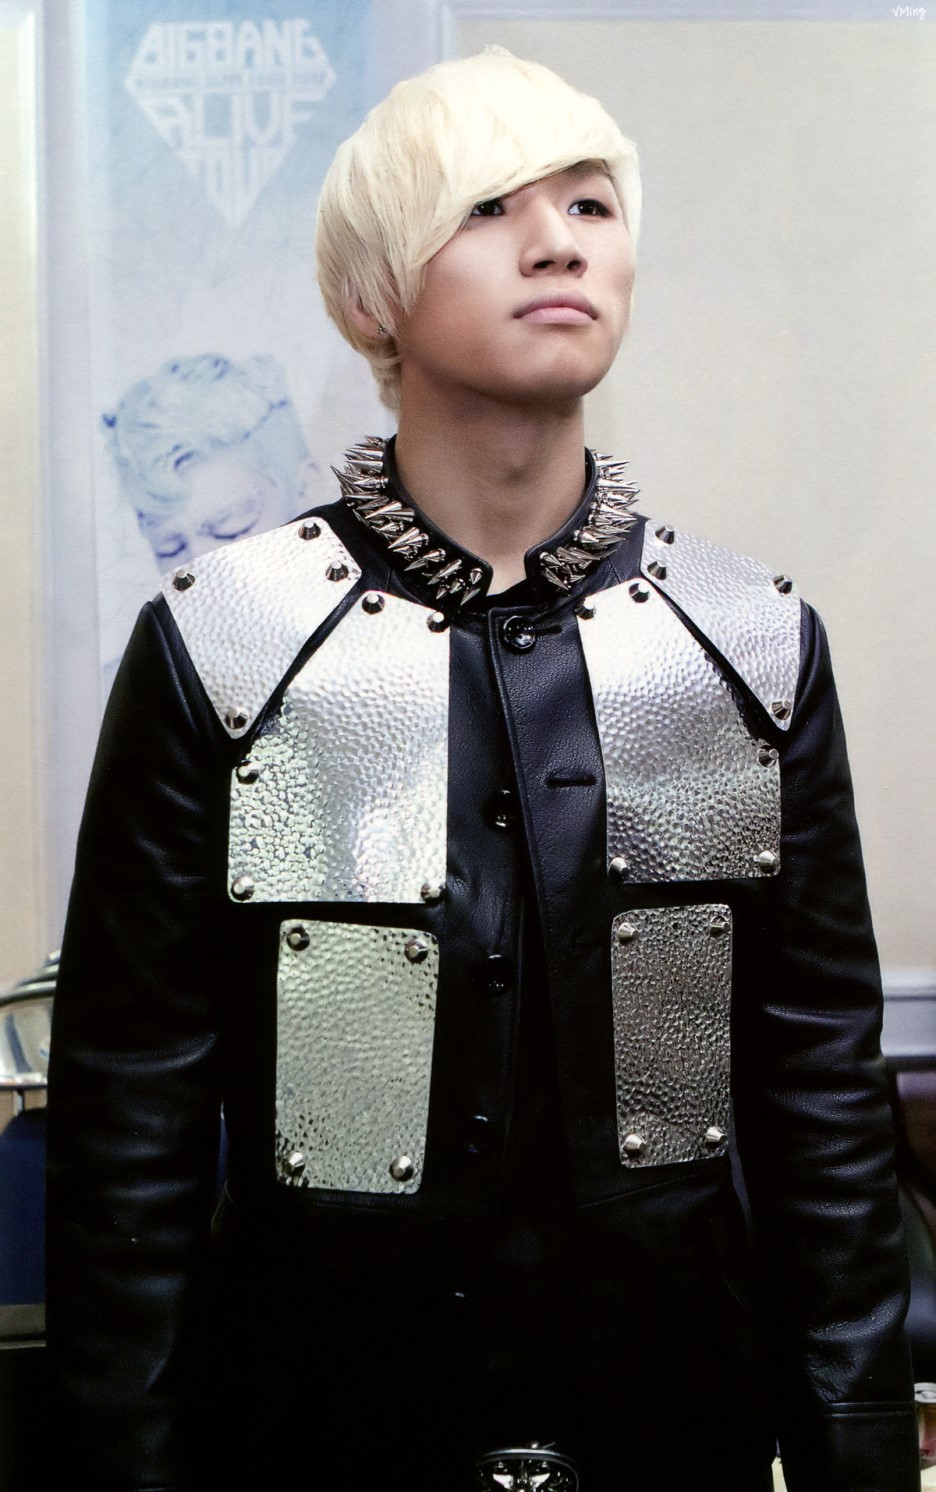 Daesung: Alive Tour in Seoul Photo Book Scans [PHOTOS]  Daesung: Alive Tour in Seoul Photo Book Scans [PHOTOS]  Daesung: Alive Tour in Seoul Photo Book Scans [PHOTOS]  Daesung: Alive Tour in Seoul Photo Book Scans [PHOTOS]